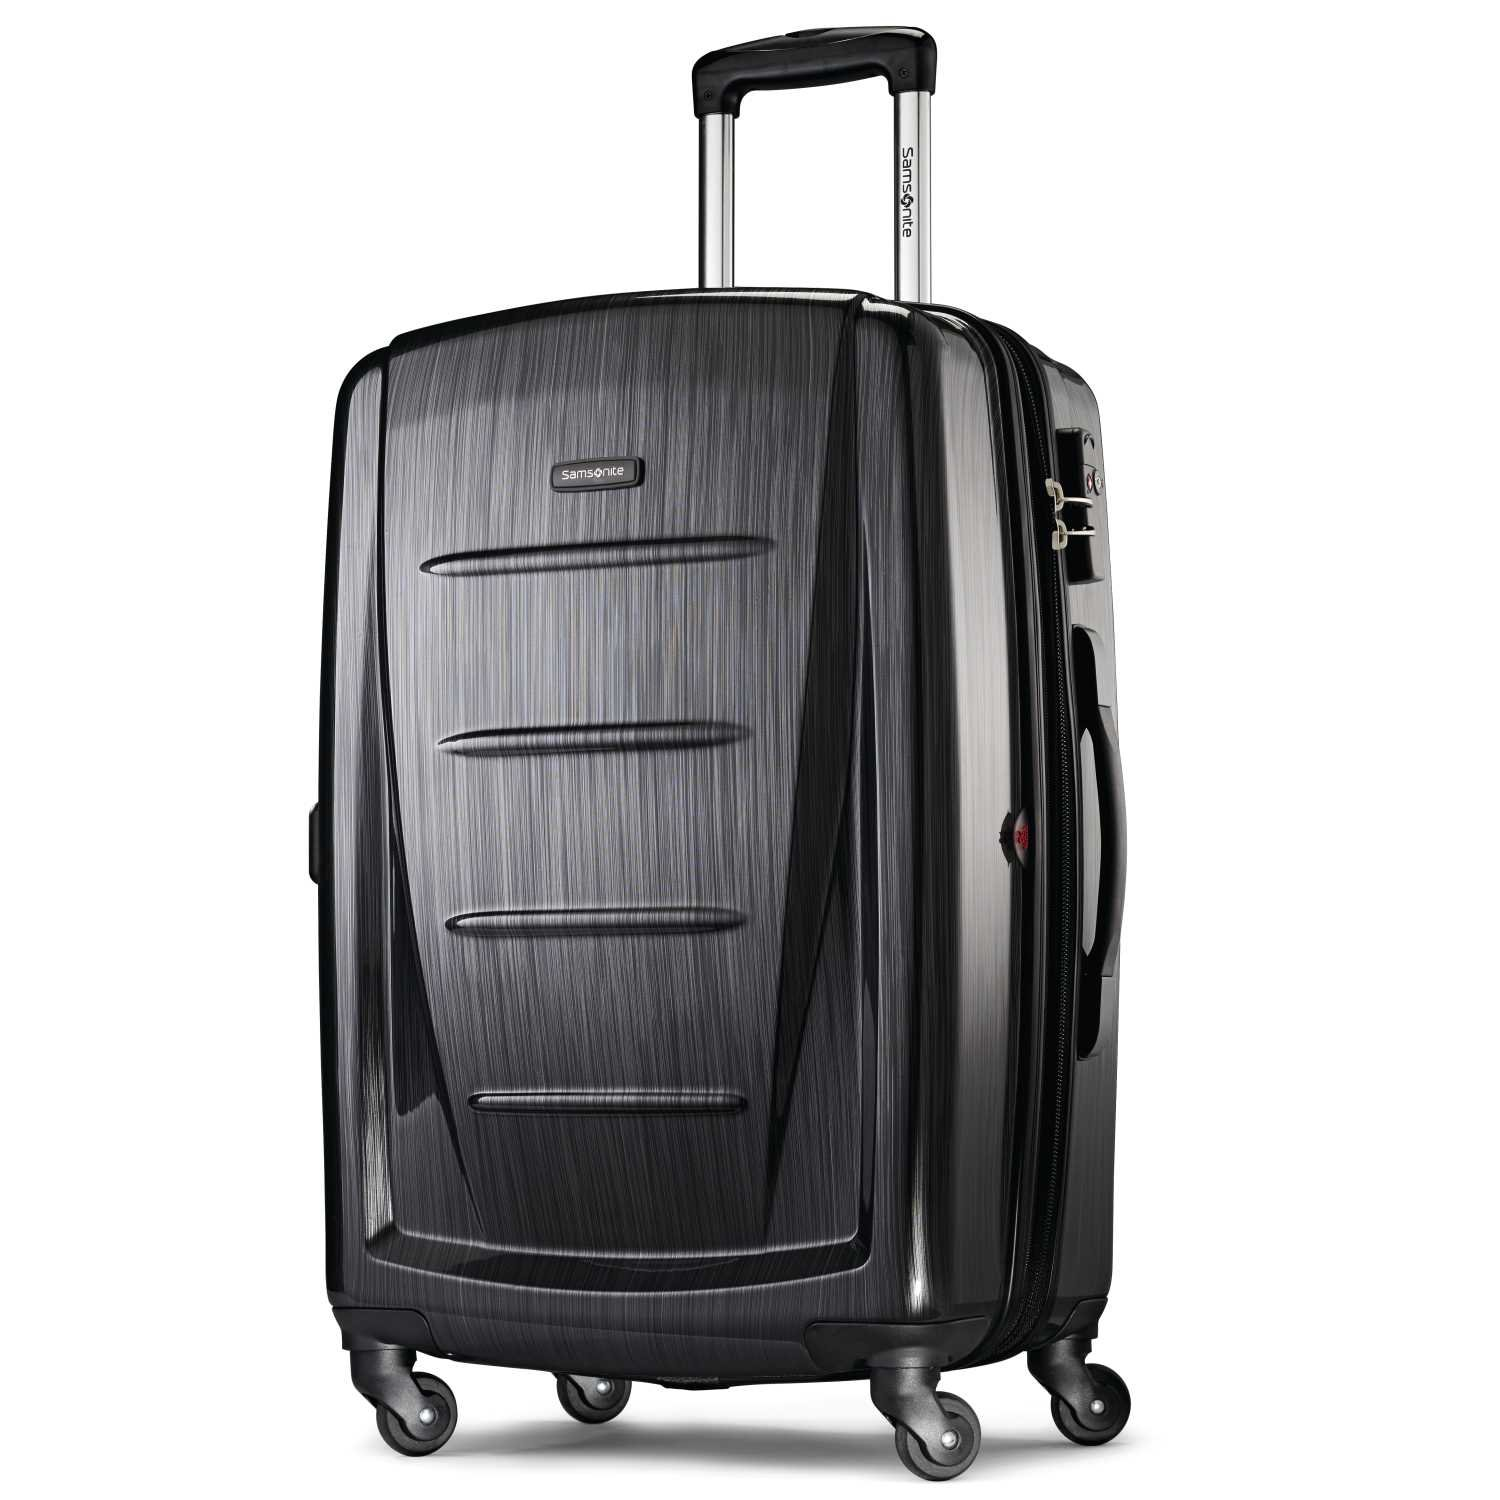 Samsonite Winfield 2 Hardside 24 Luggage, Deep Blue Samsonite Corporation 56845-1277